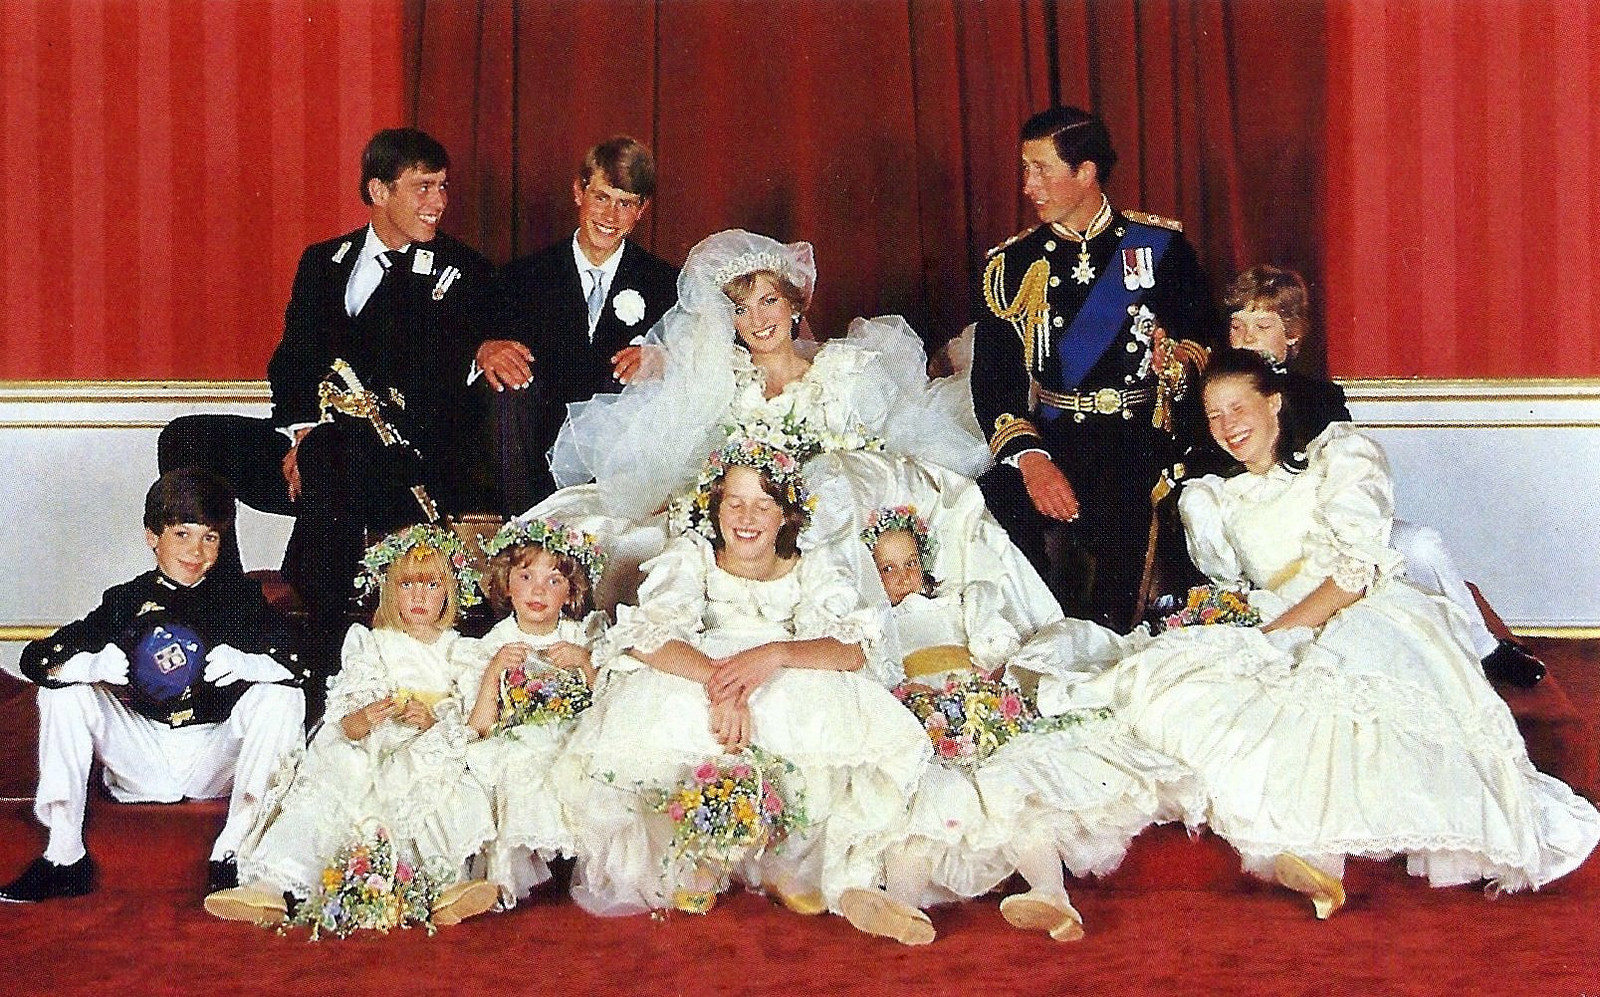 Diana Spencer's Wedding to Prince Charles